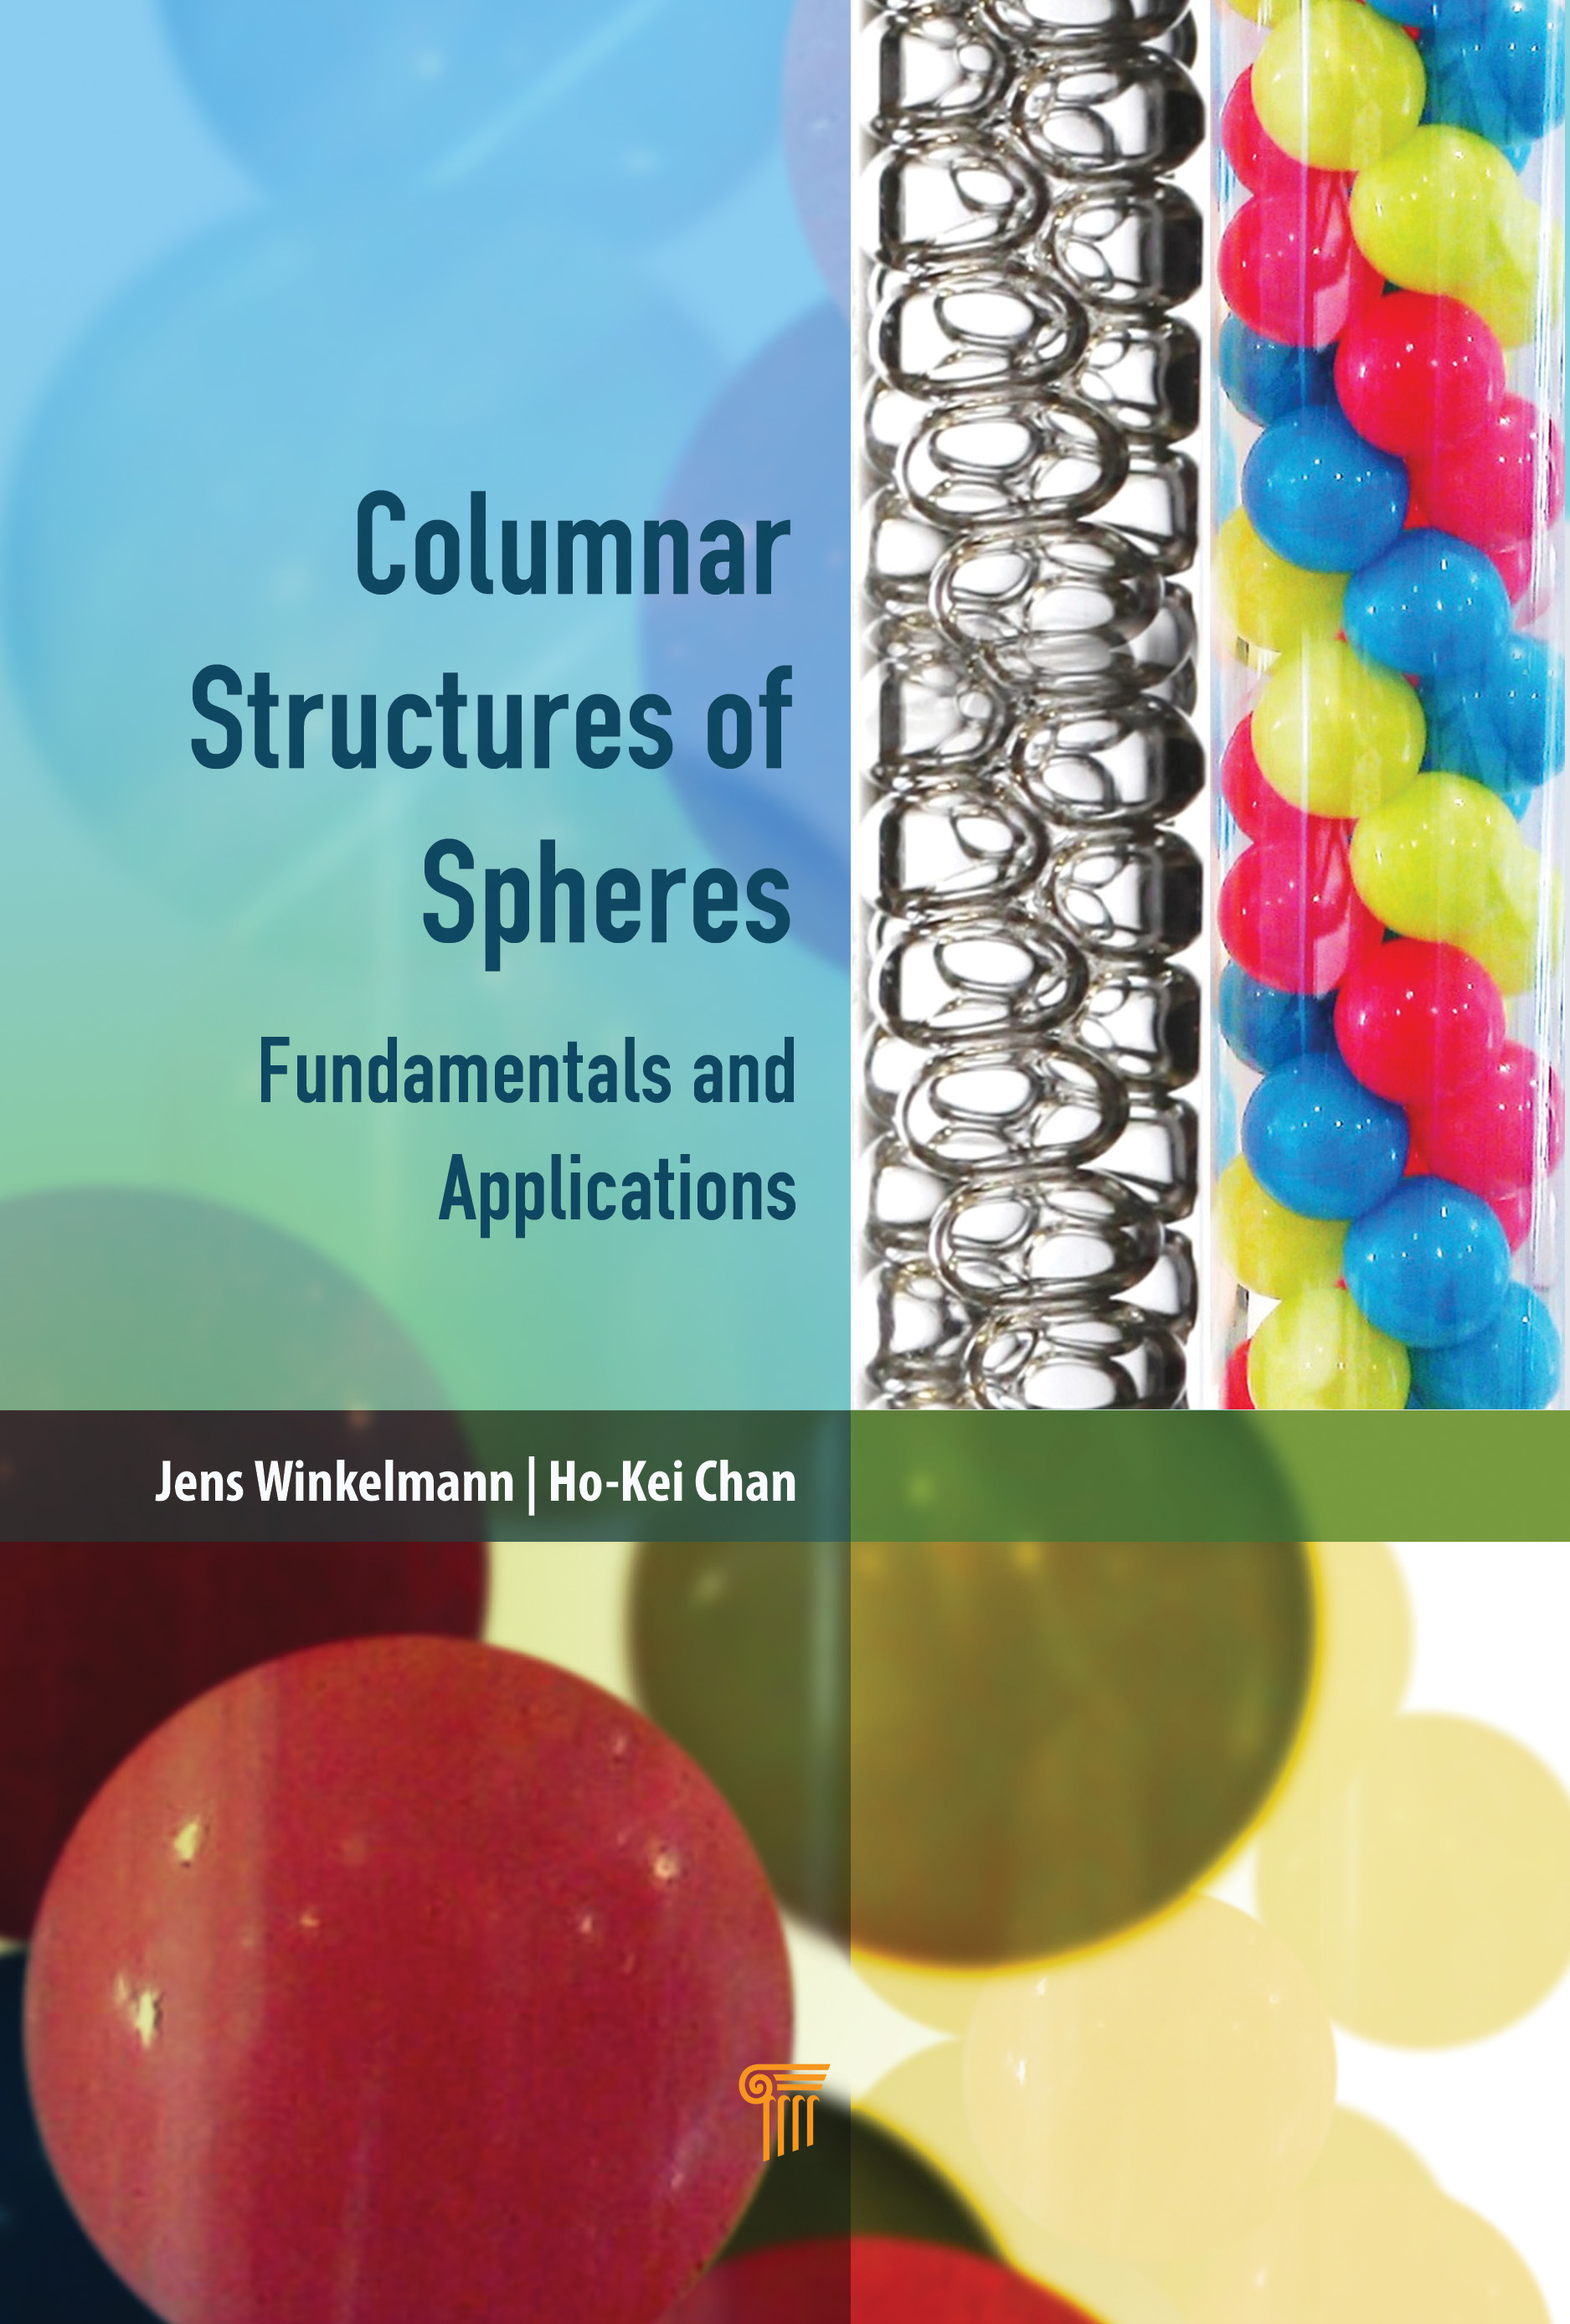 Engineering Columnar Crystals: A Novel Deposition Approach book cover